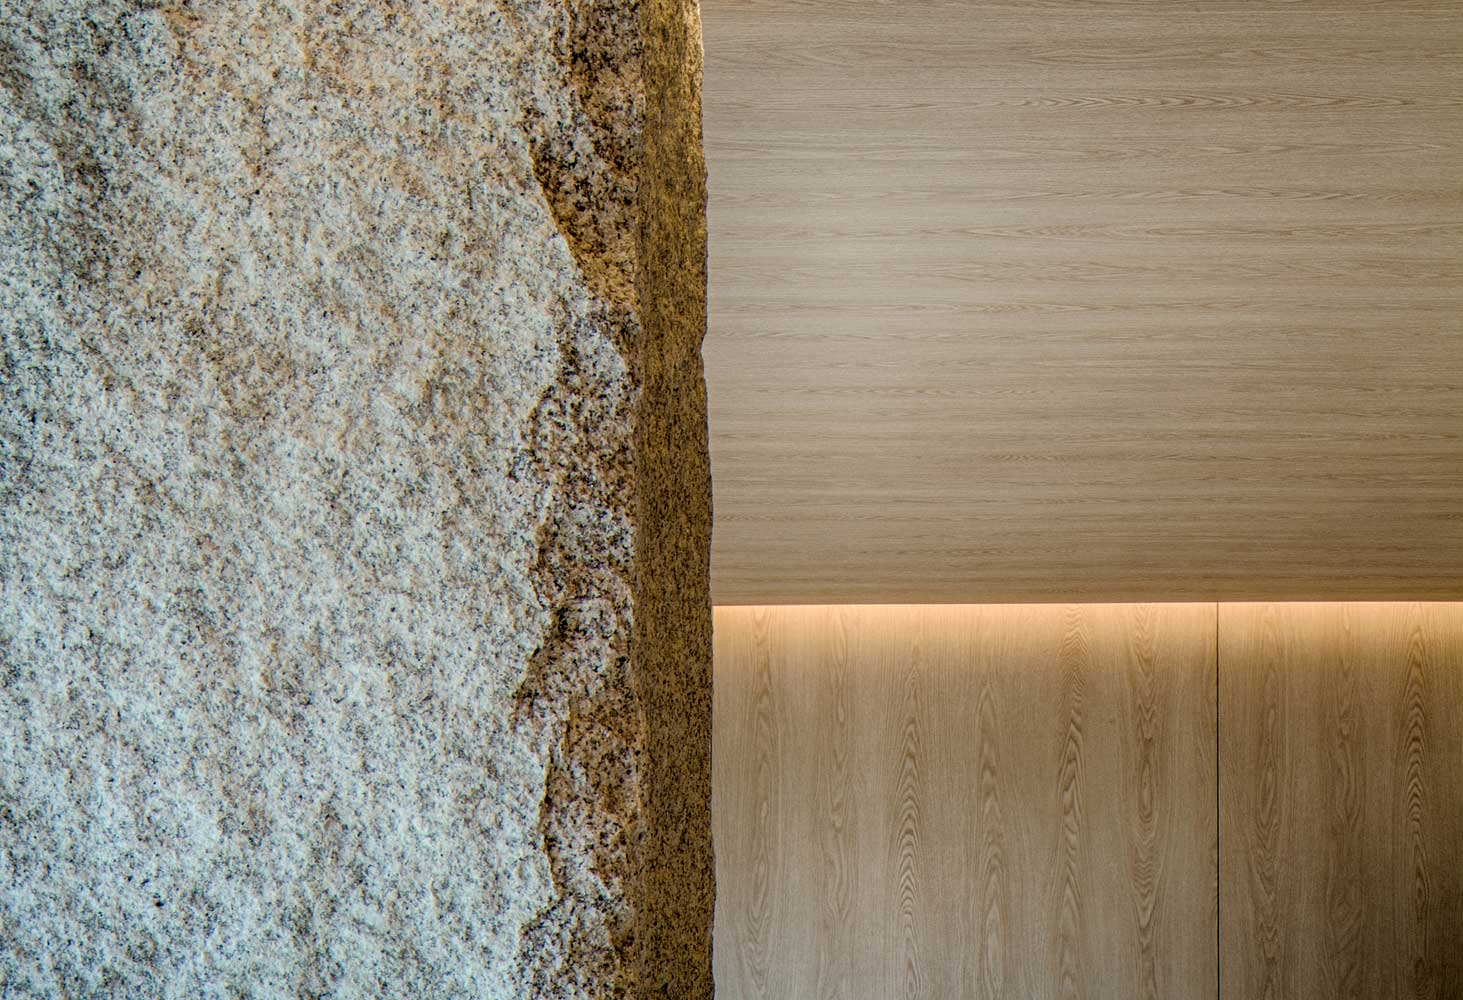 A stone pillar juts into the yoga studio offering structural support for the building and connecting the manmade with the natural